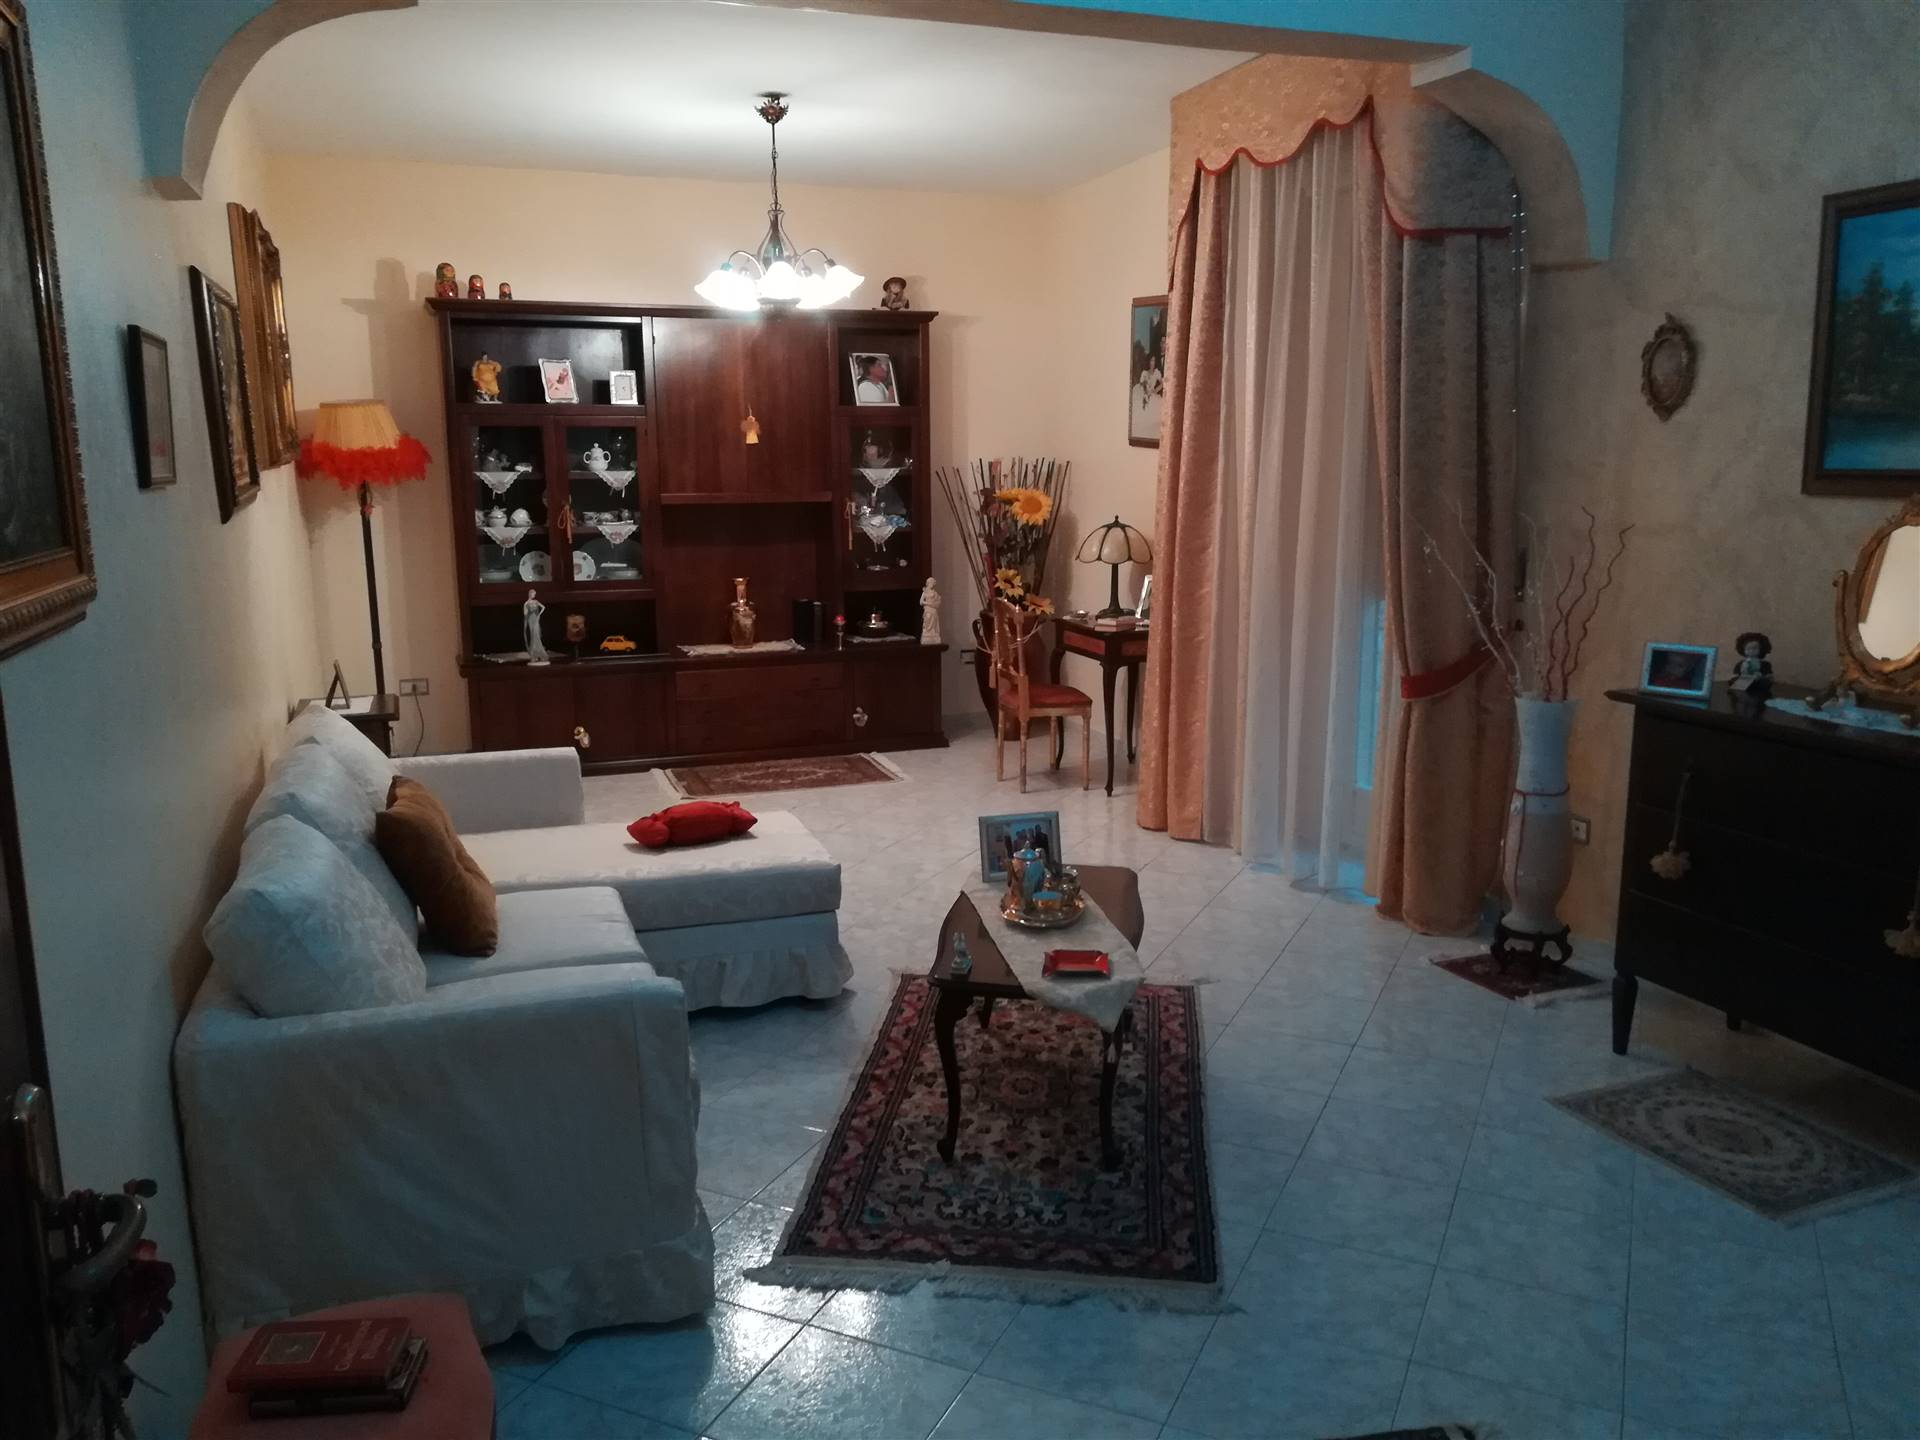 CORSO ITALIA, LICATA, Apartment for sale of 100 Sq. mt., Habitable, Heating Individual heating system, Energetic class: G, placed at 1°, composed by: